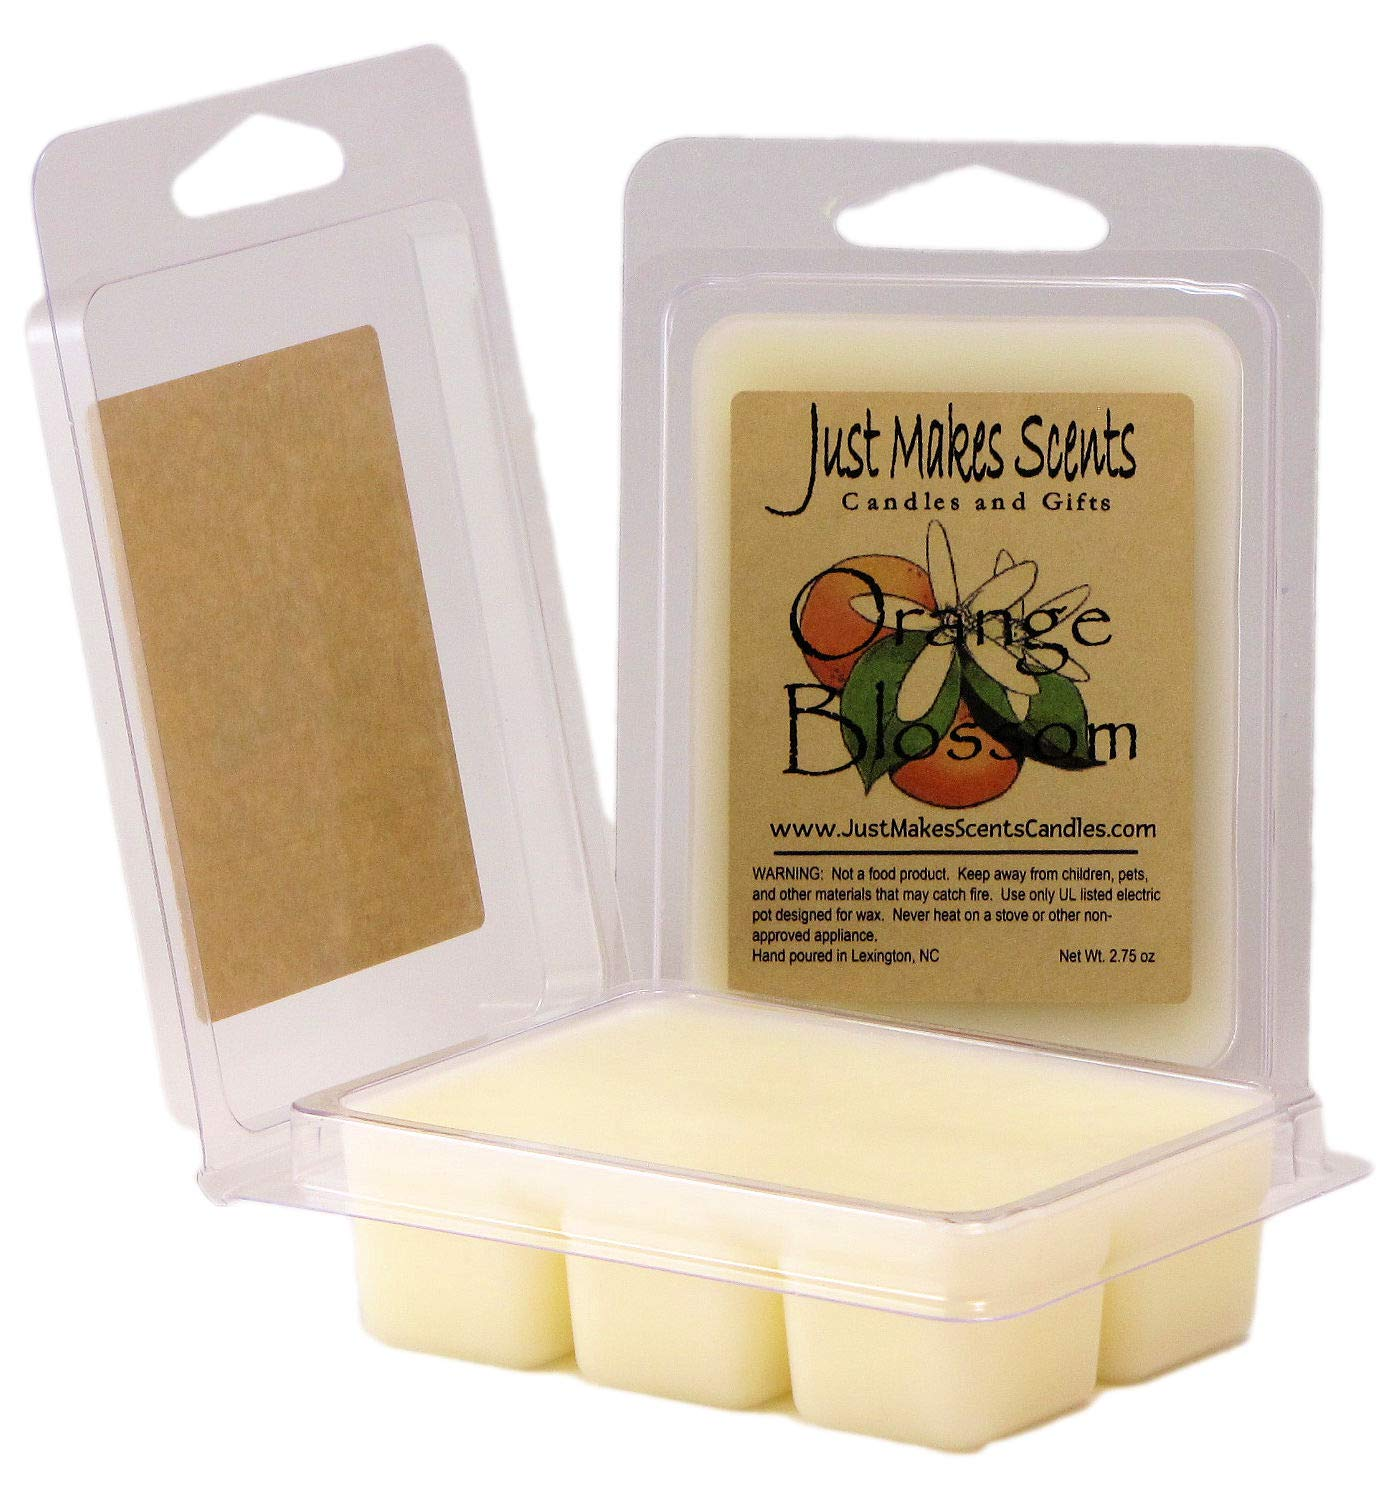 Just Makes Scents 2 Pack - Orange Blossom Scented Soy Wax Melts | Long Lasting Orange Tree Flower Fragrance | Hand Poured in the USA Candles & Gifts